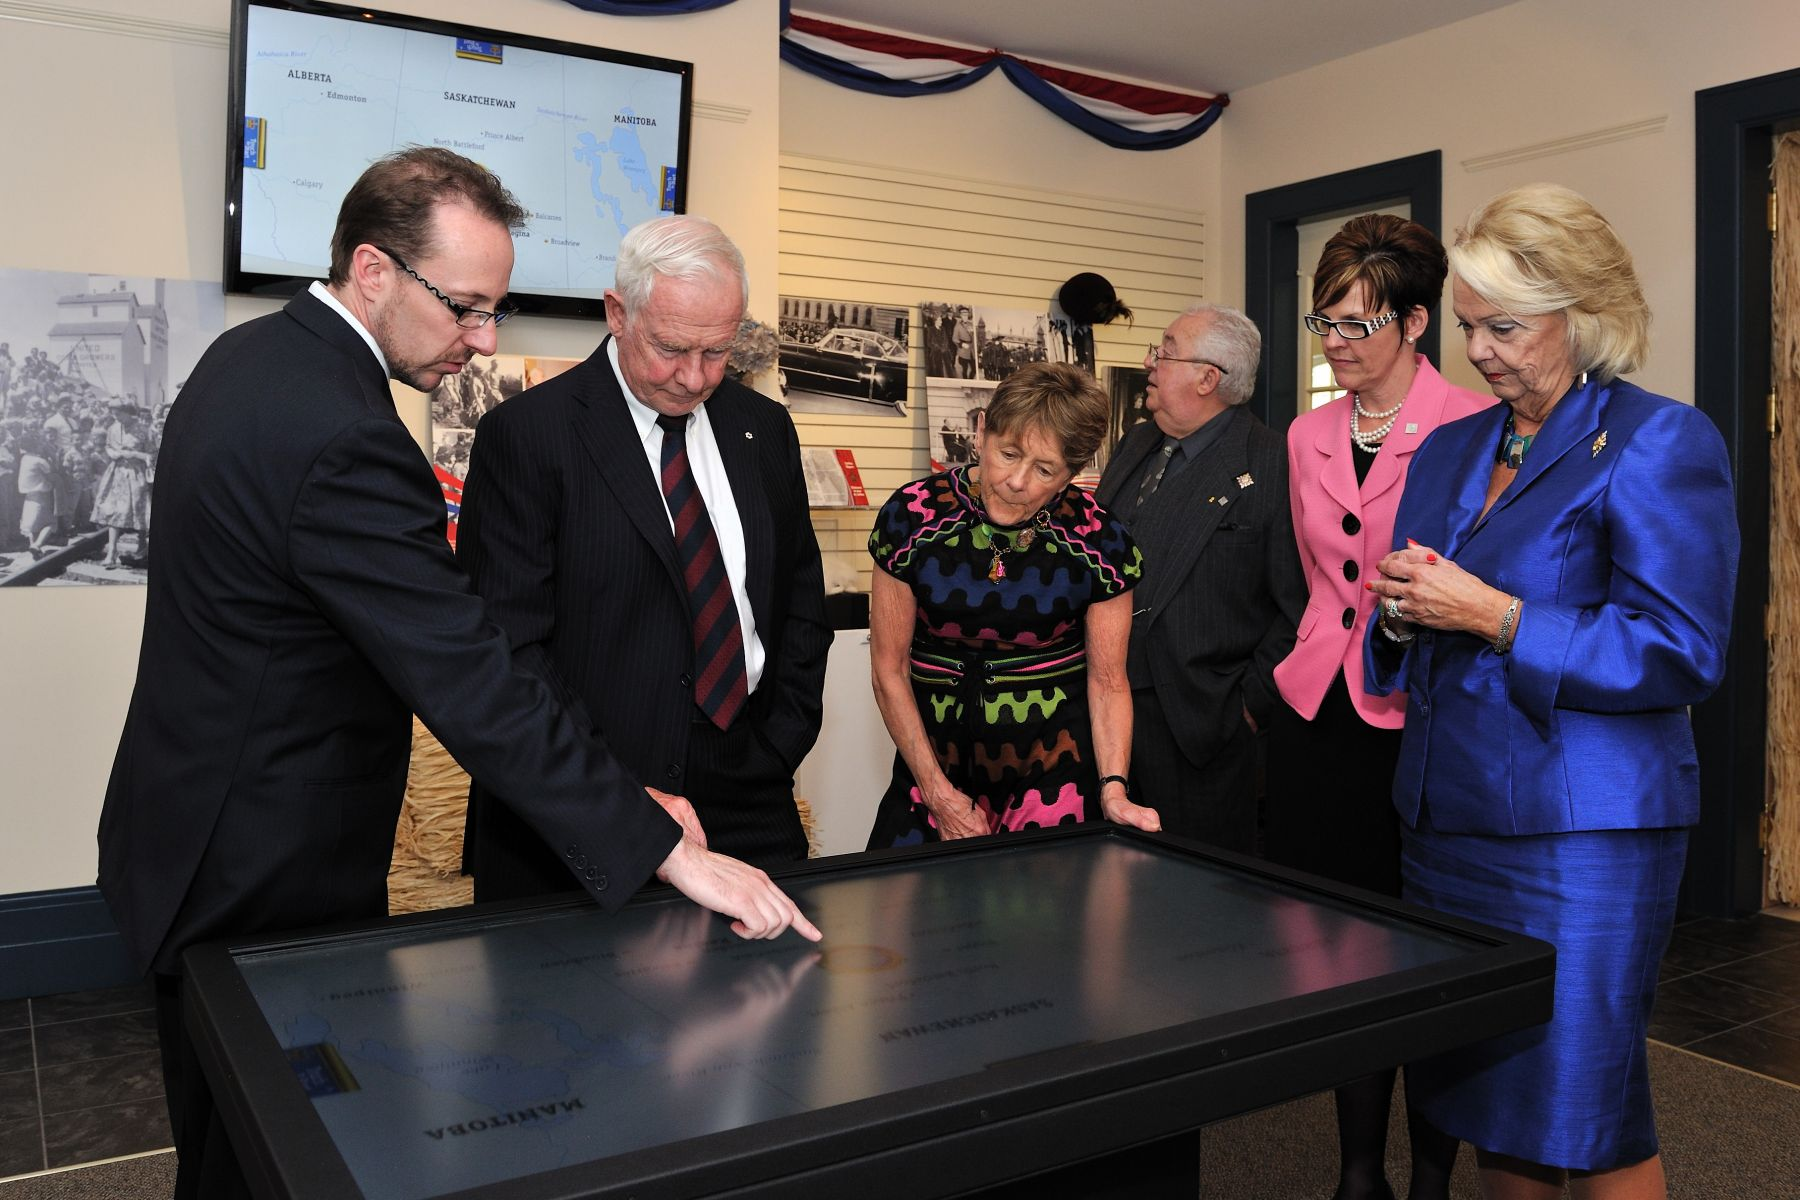 Accompany by the Lieutenant-Governor, Their Excellencies toured a Diamond Jubilee display at Government House in Saskatchewan.